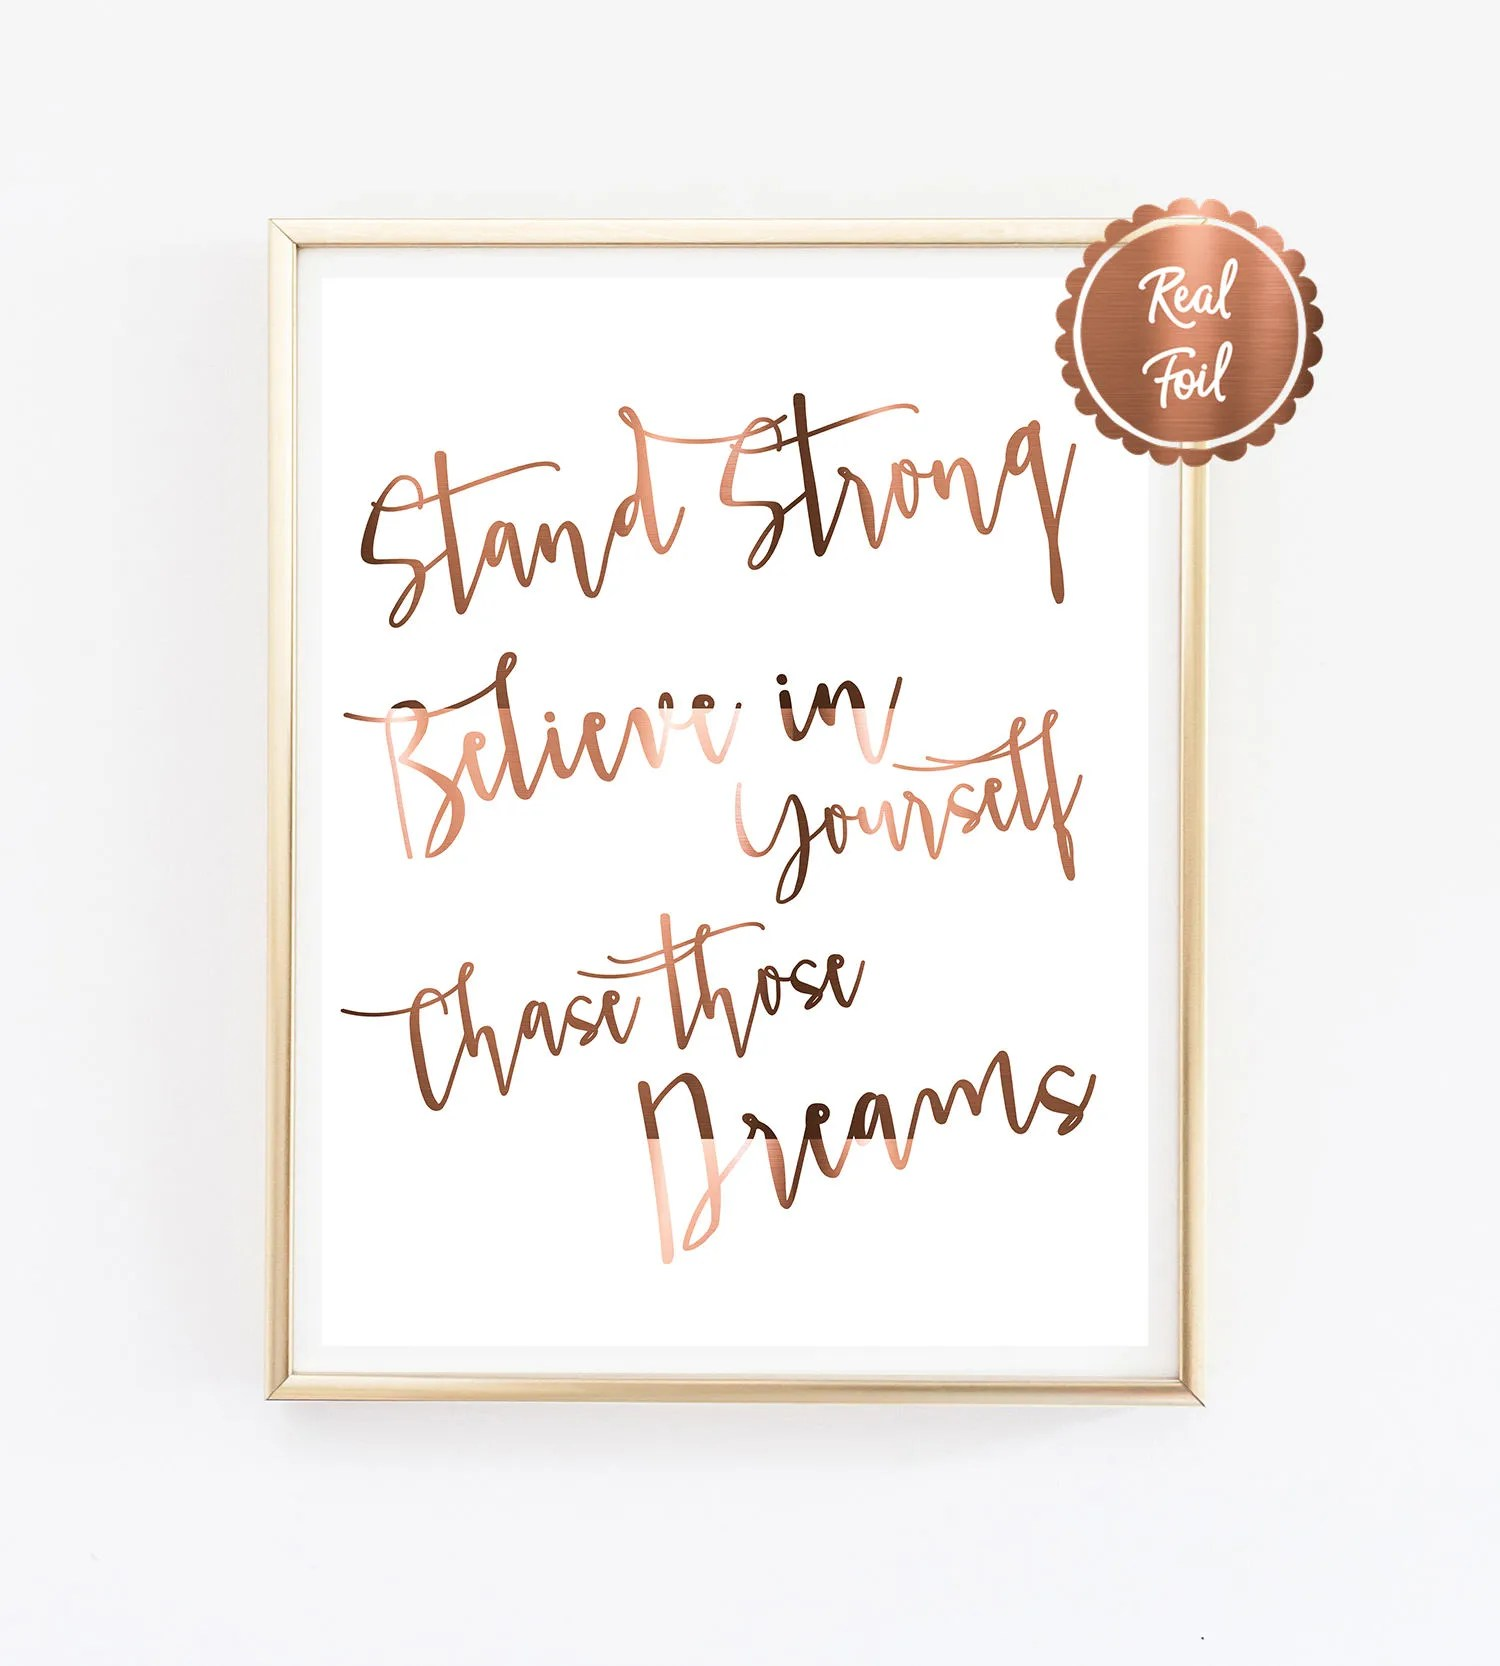 Inspiring Quote Print \/\/ Stand strong \/\/ Believe in yourself - contact information template word